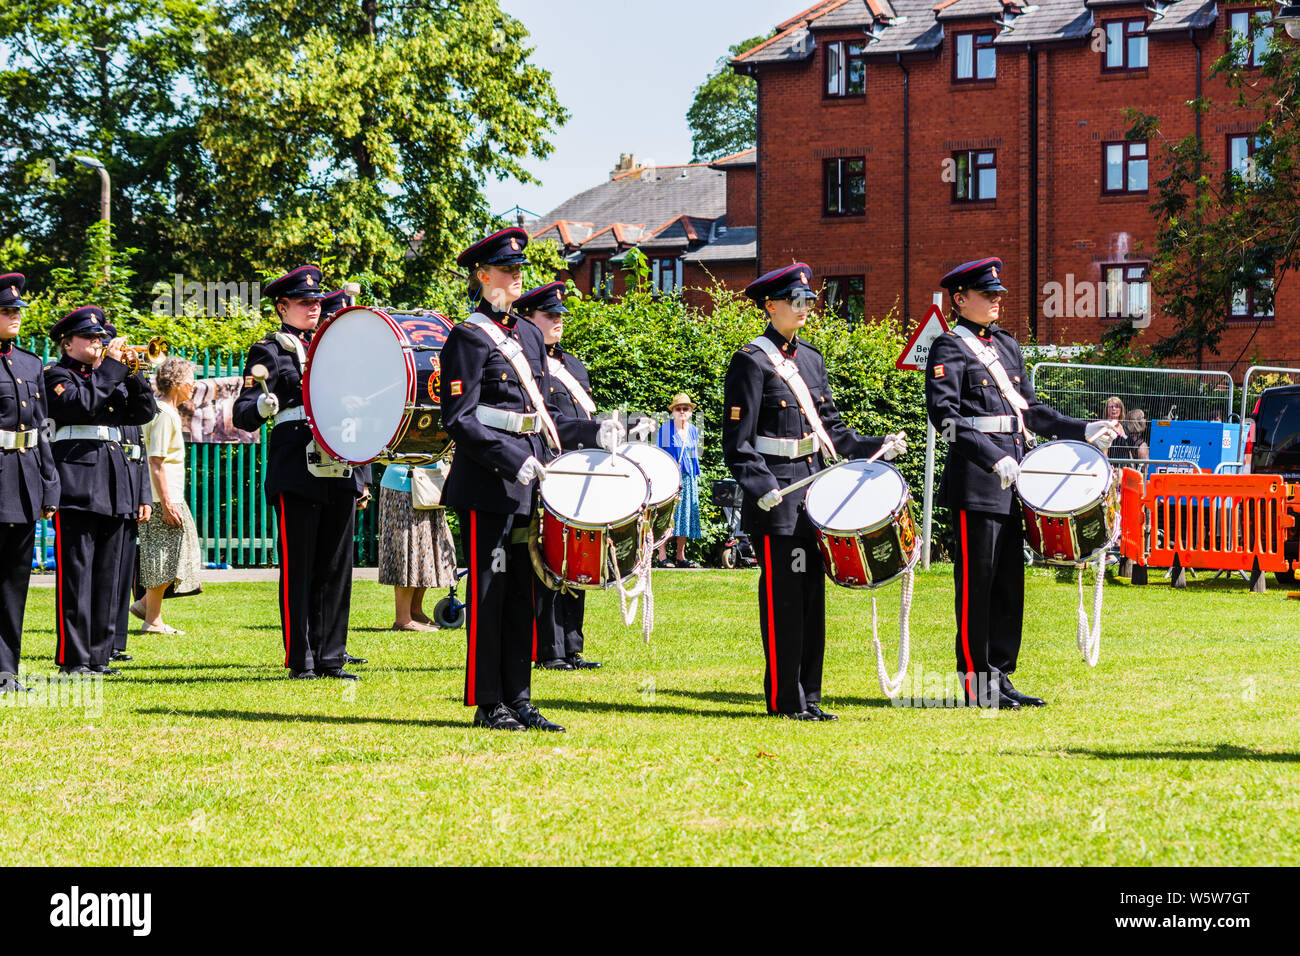 Members of Wiltshire Army cadet force band playing in Trowbridge park during the armed forces celebration weekend. Stock Photo